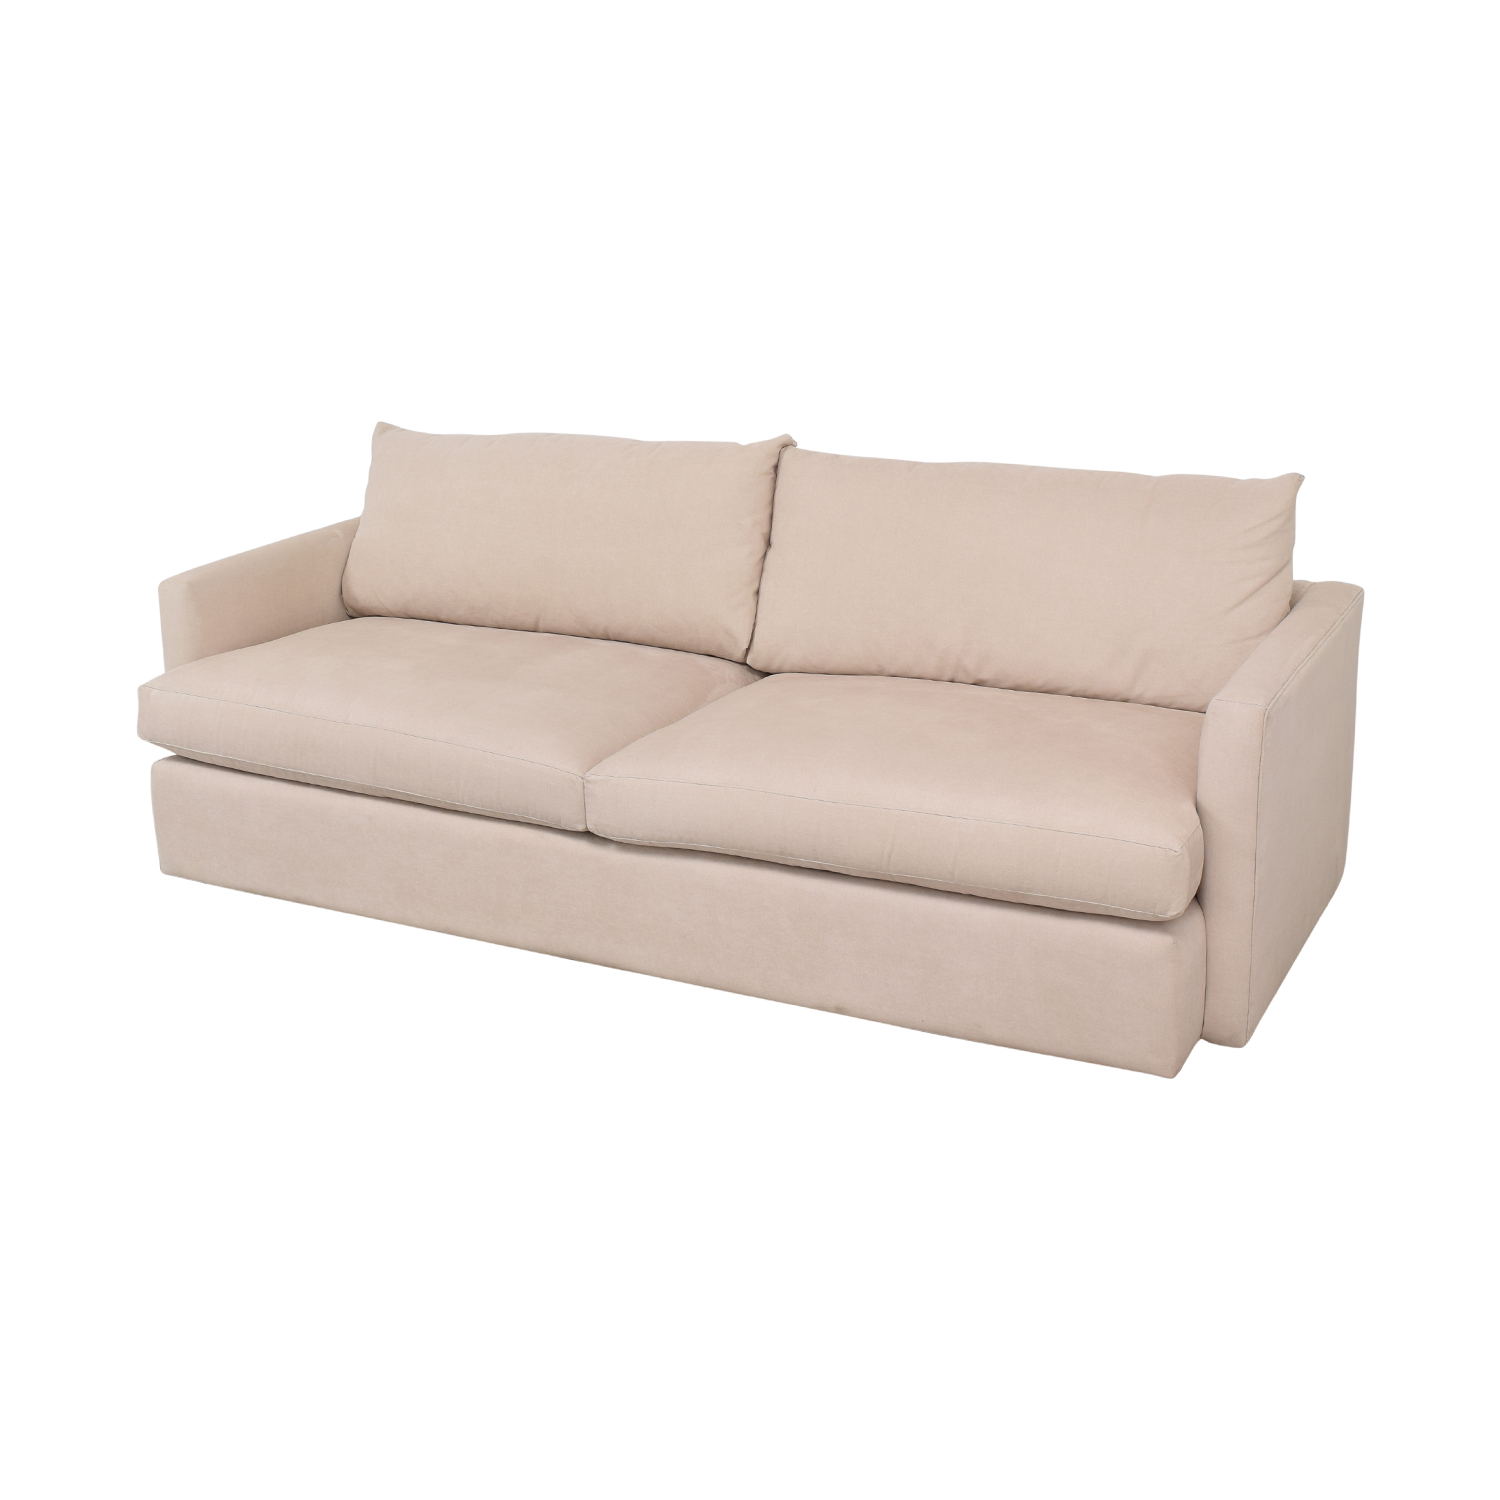 Crate & Barrel Crate & Barrel Lounge Sofa price